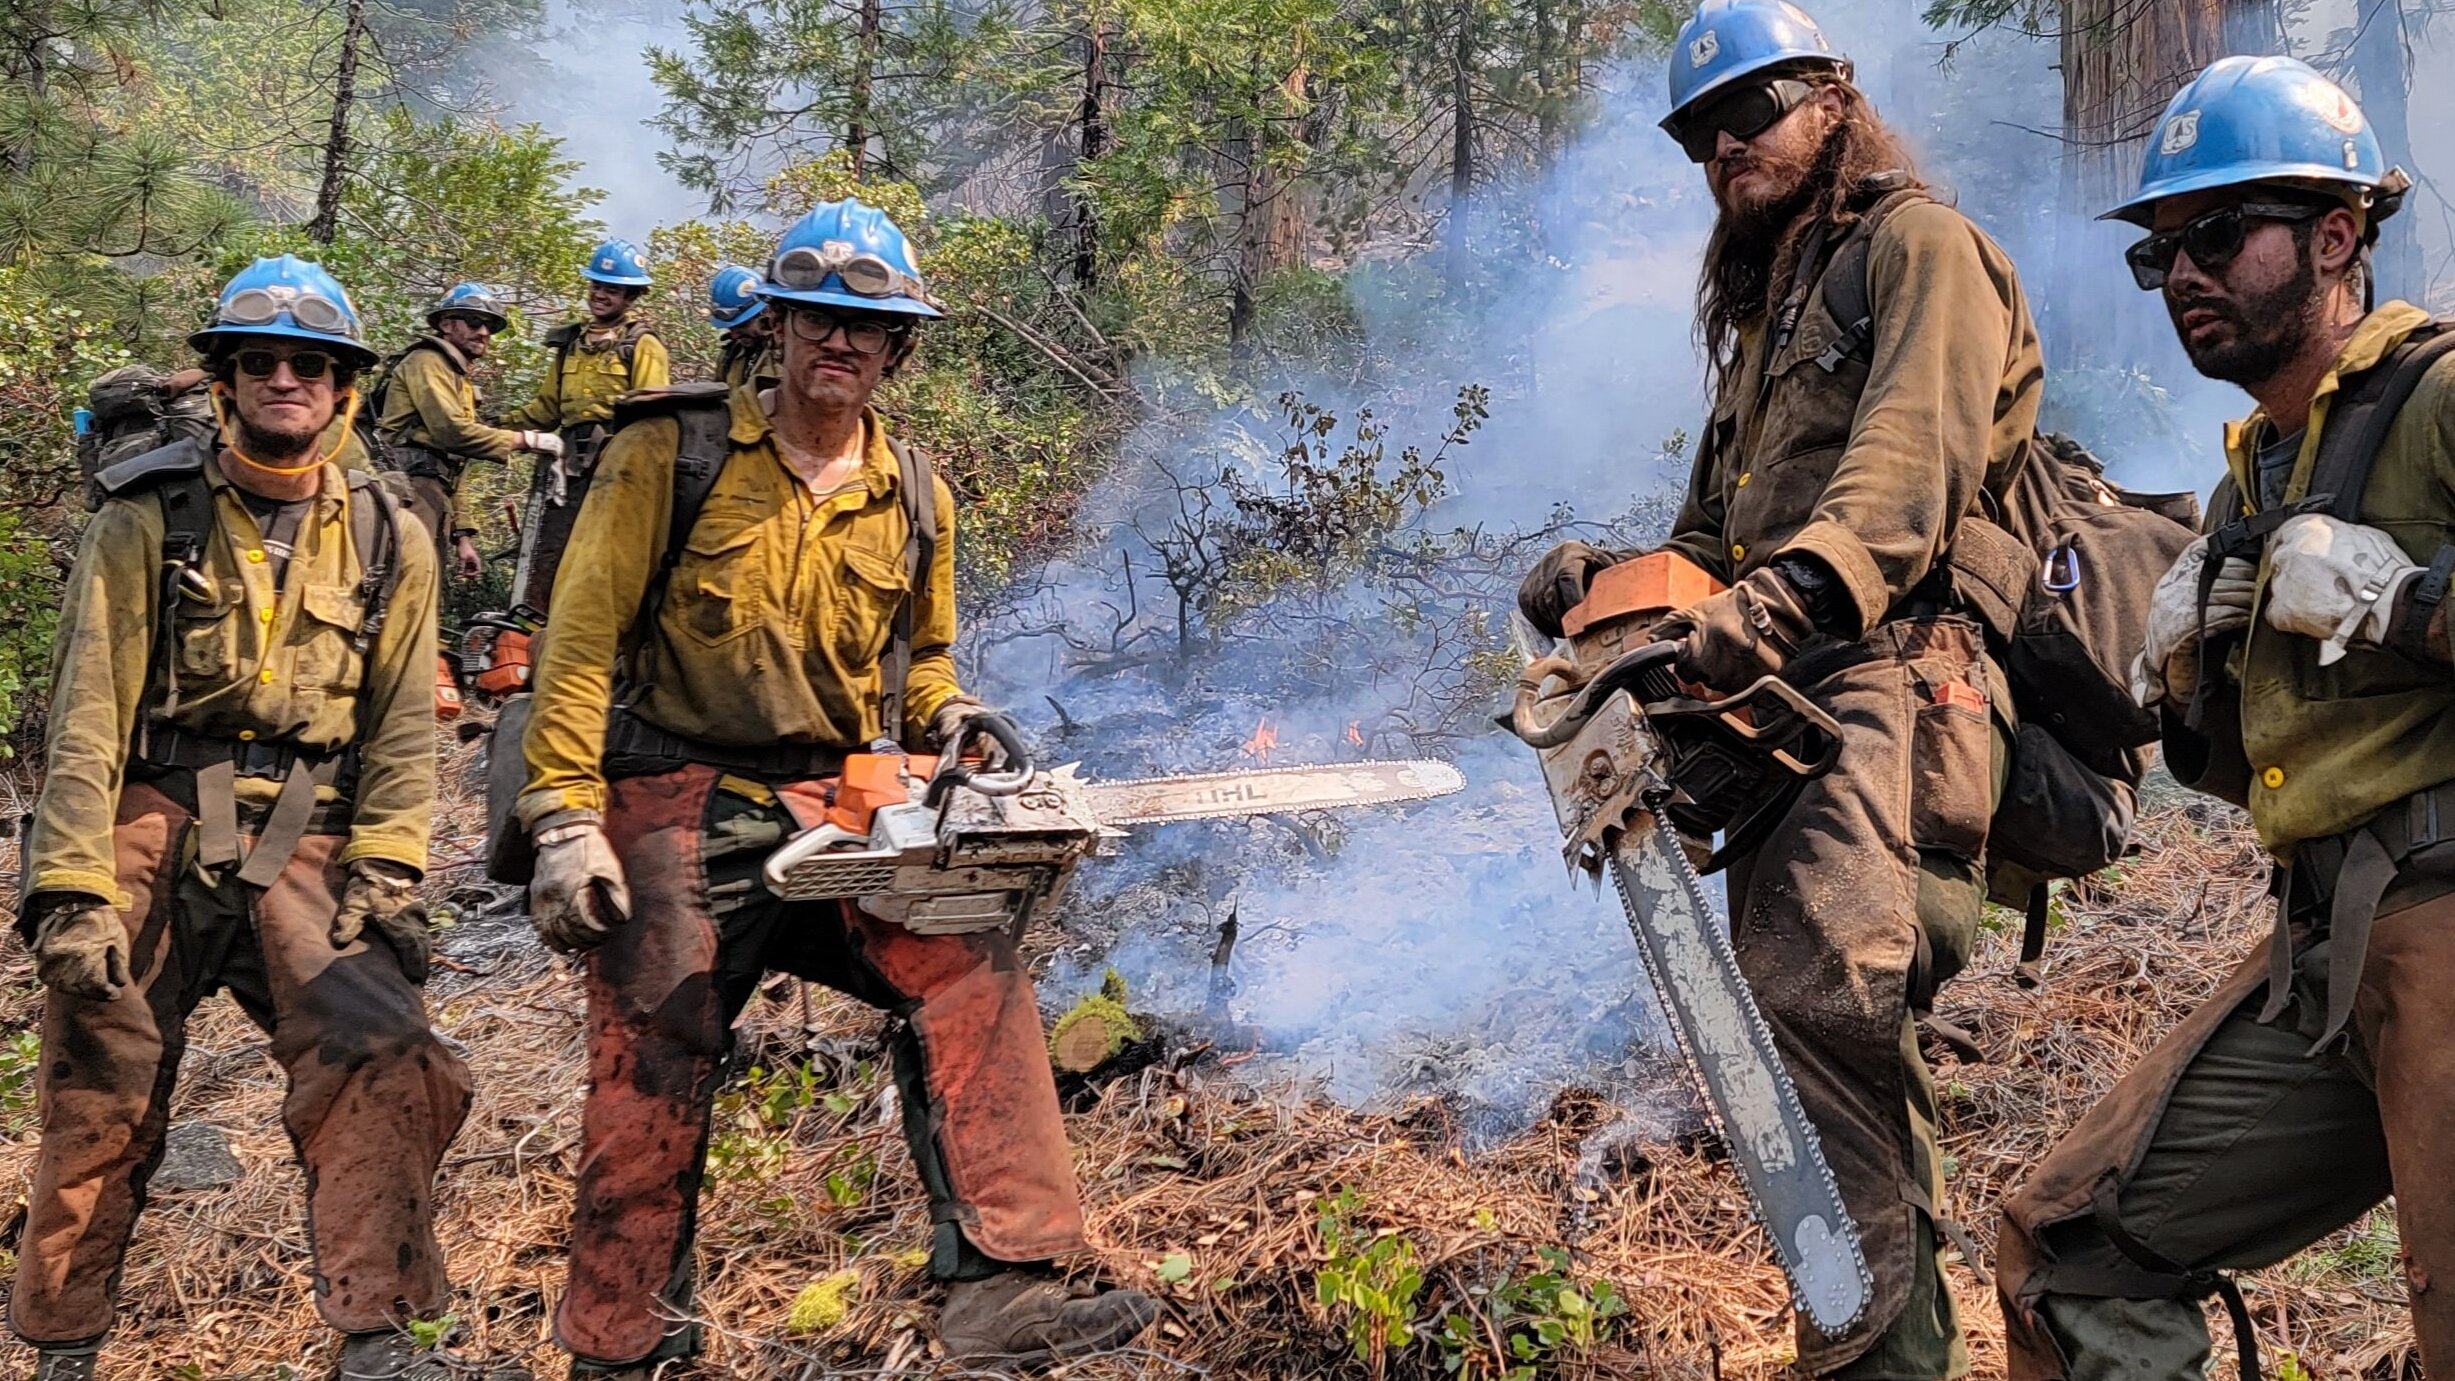 Crews at the Dixie fire in Northern California.